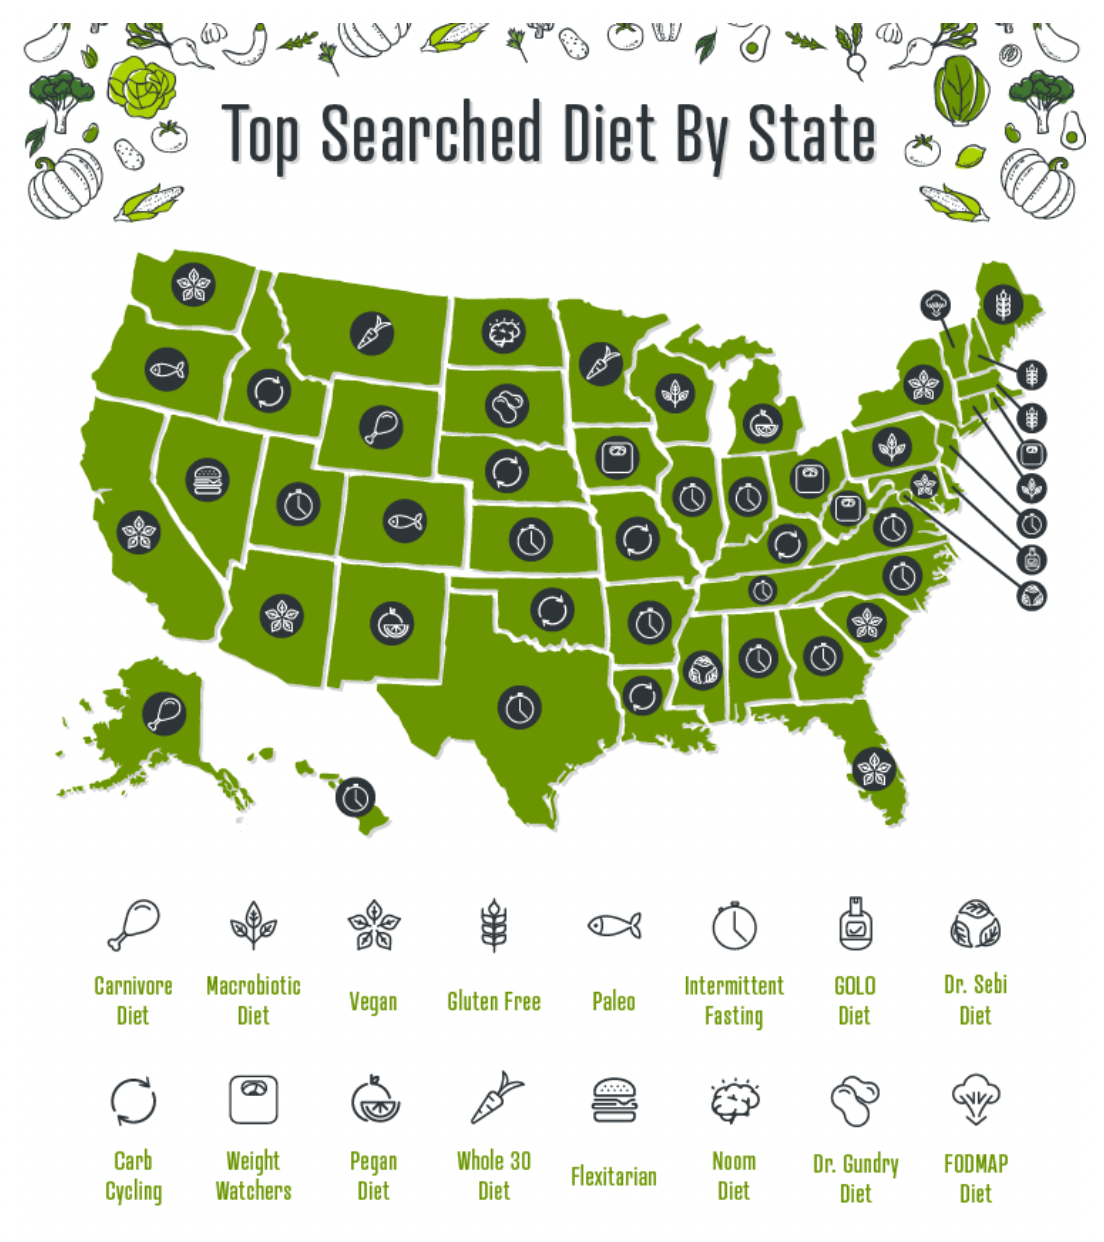 Top Searched Diet by State